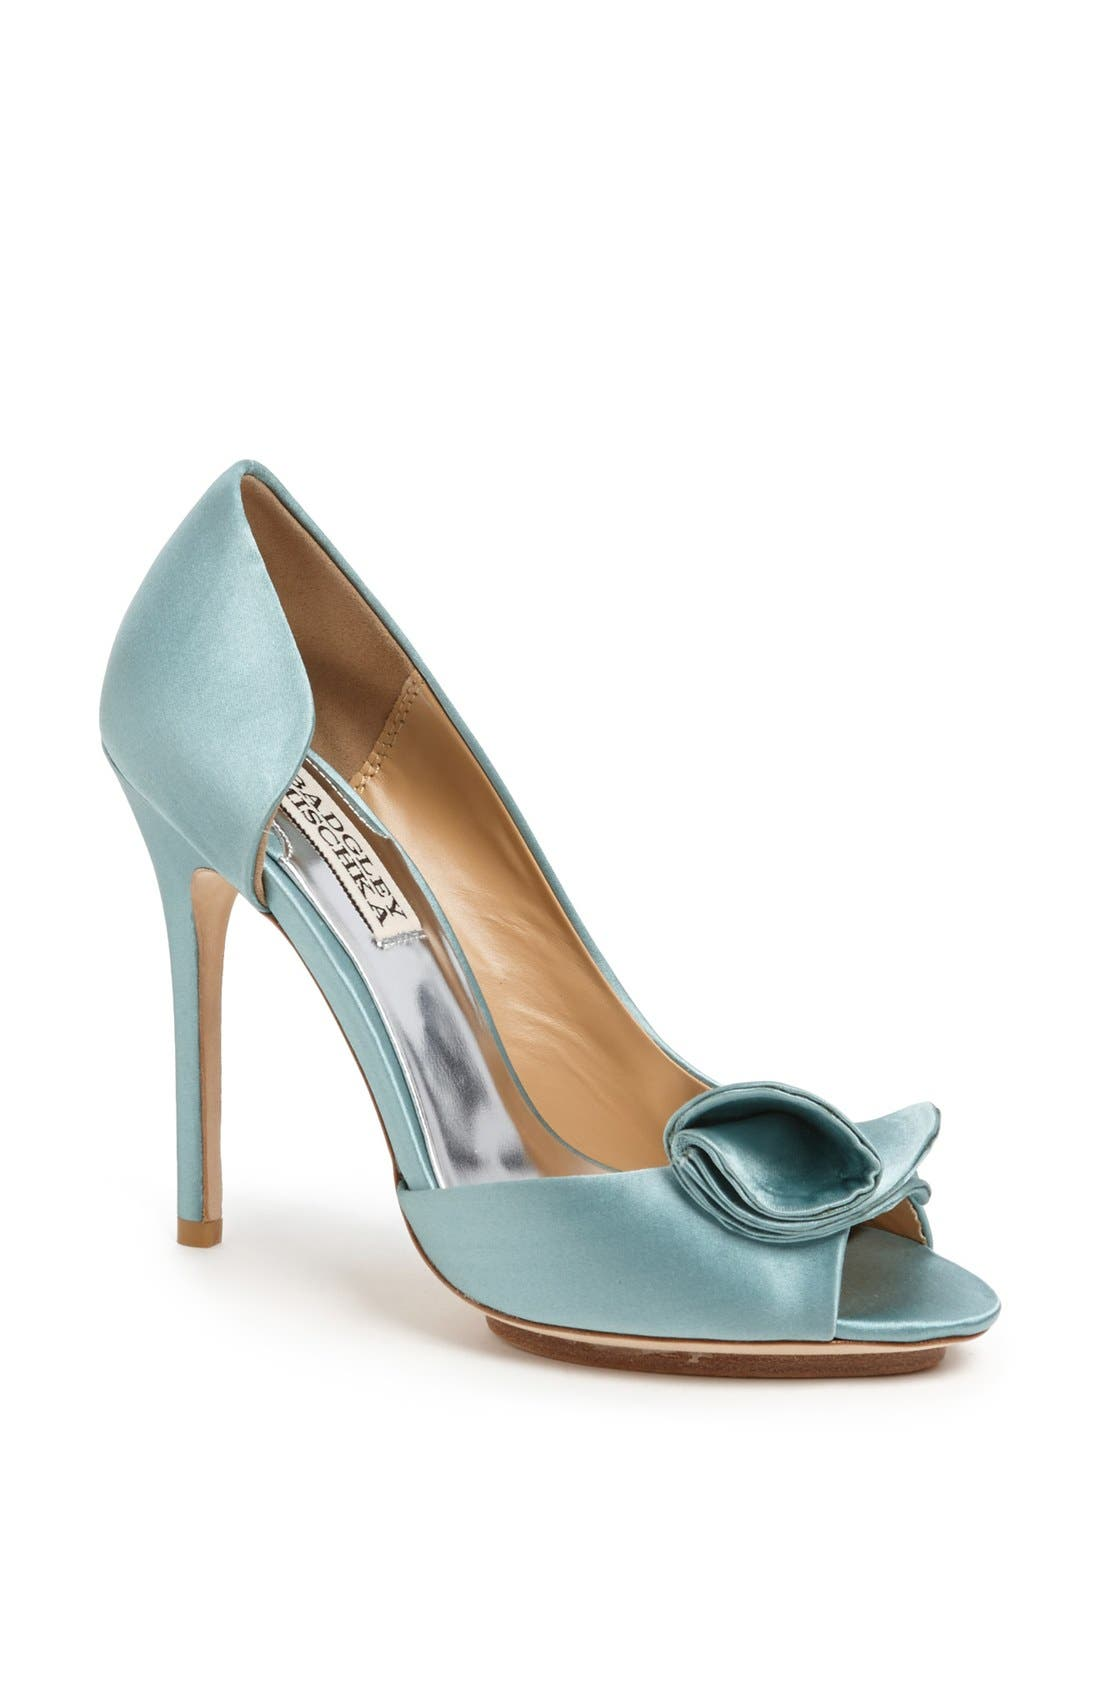 Alternate Image 1 Selected - Badgley Mischka 'Tarian' Pump